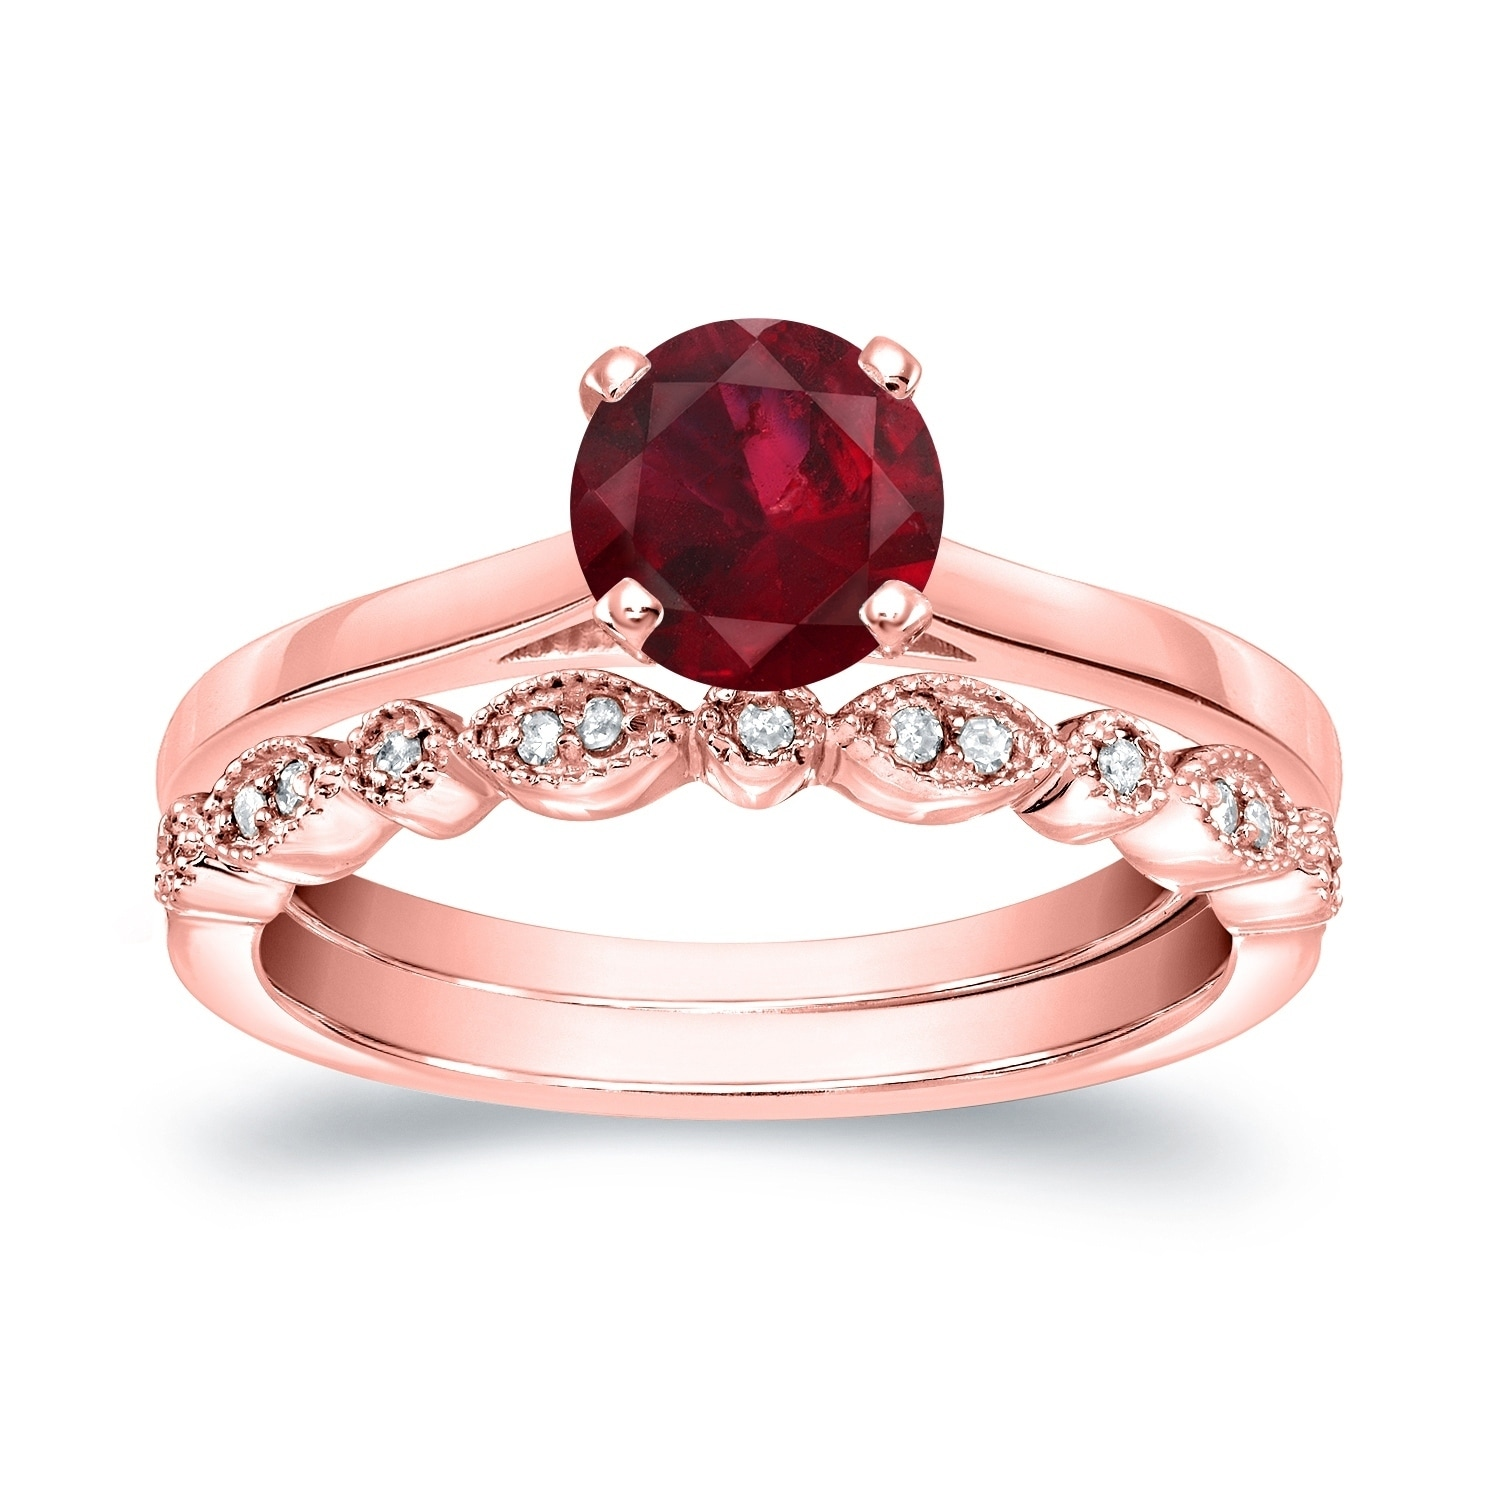 Shop Auriya 14k Gold 5/8ct Red Ruby and 1/6ct TDW Vintage-Inspired ...